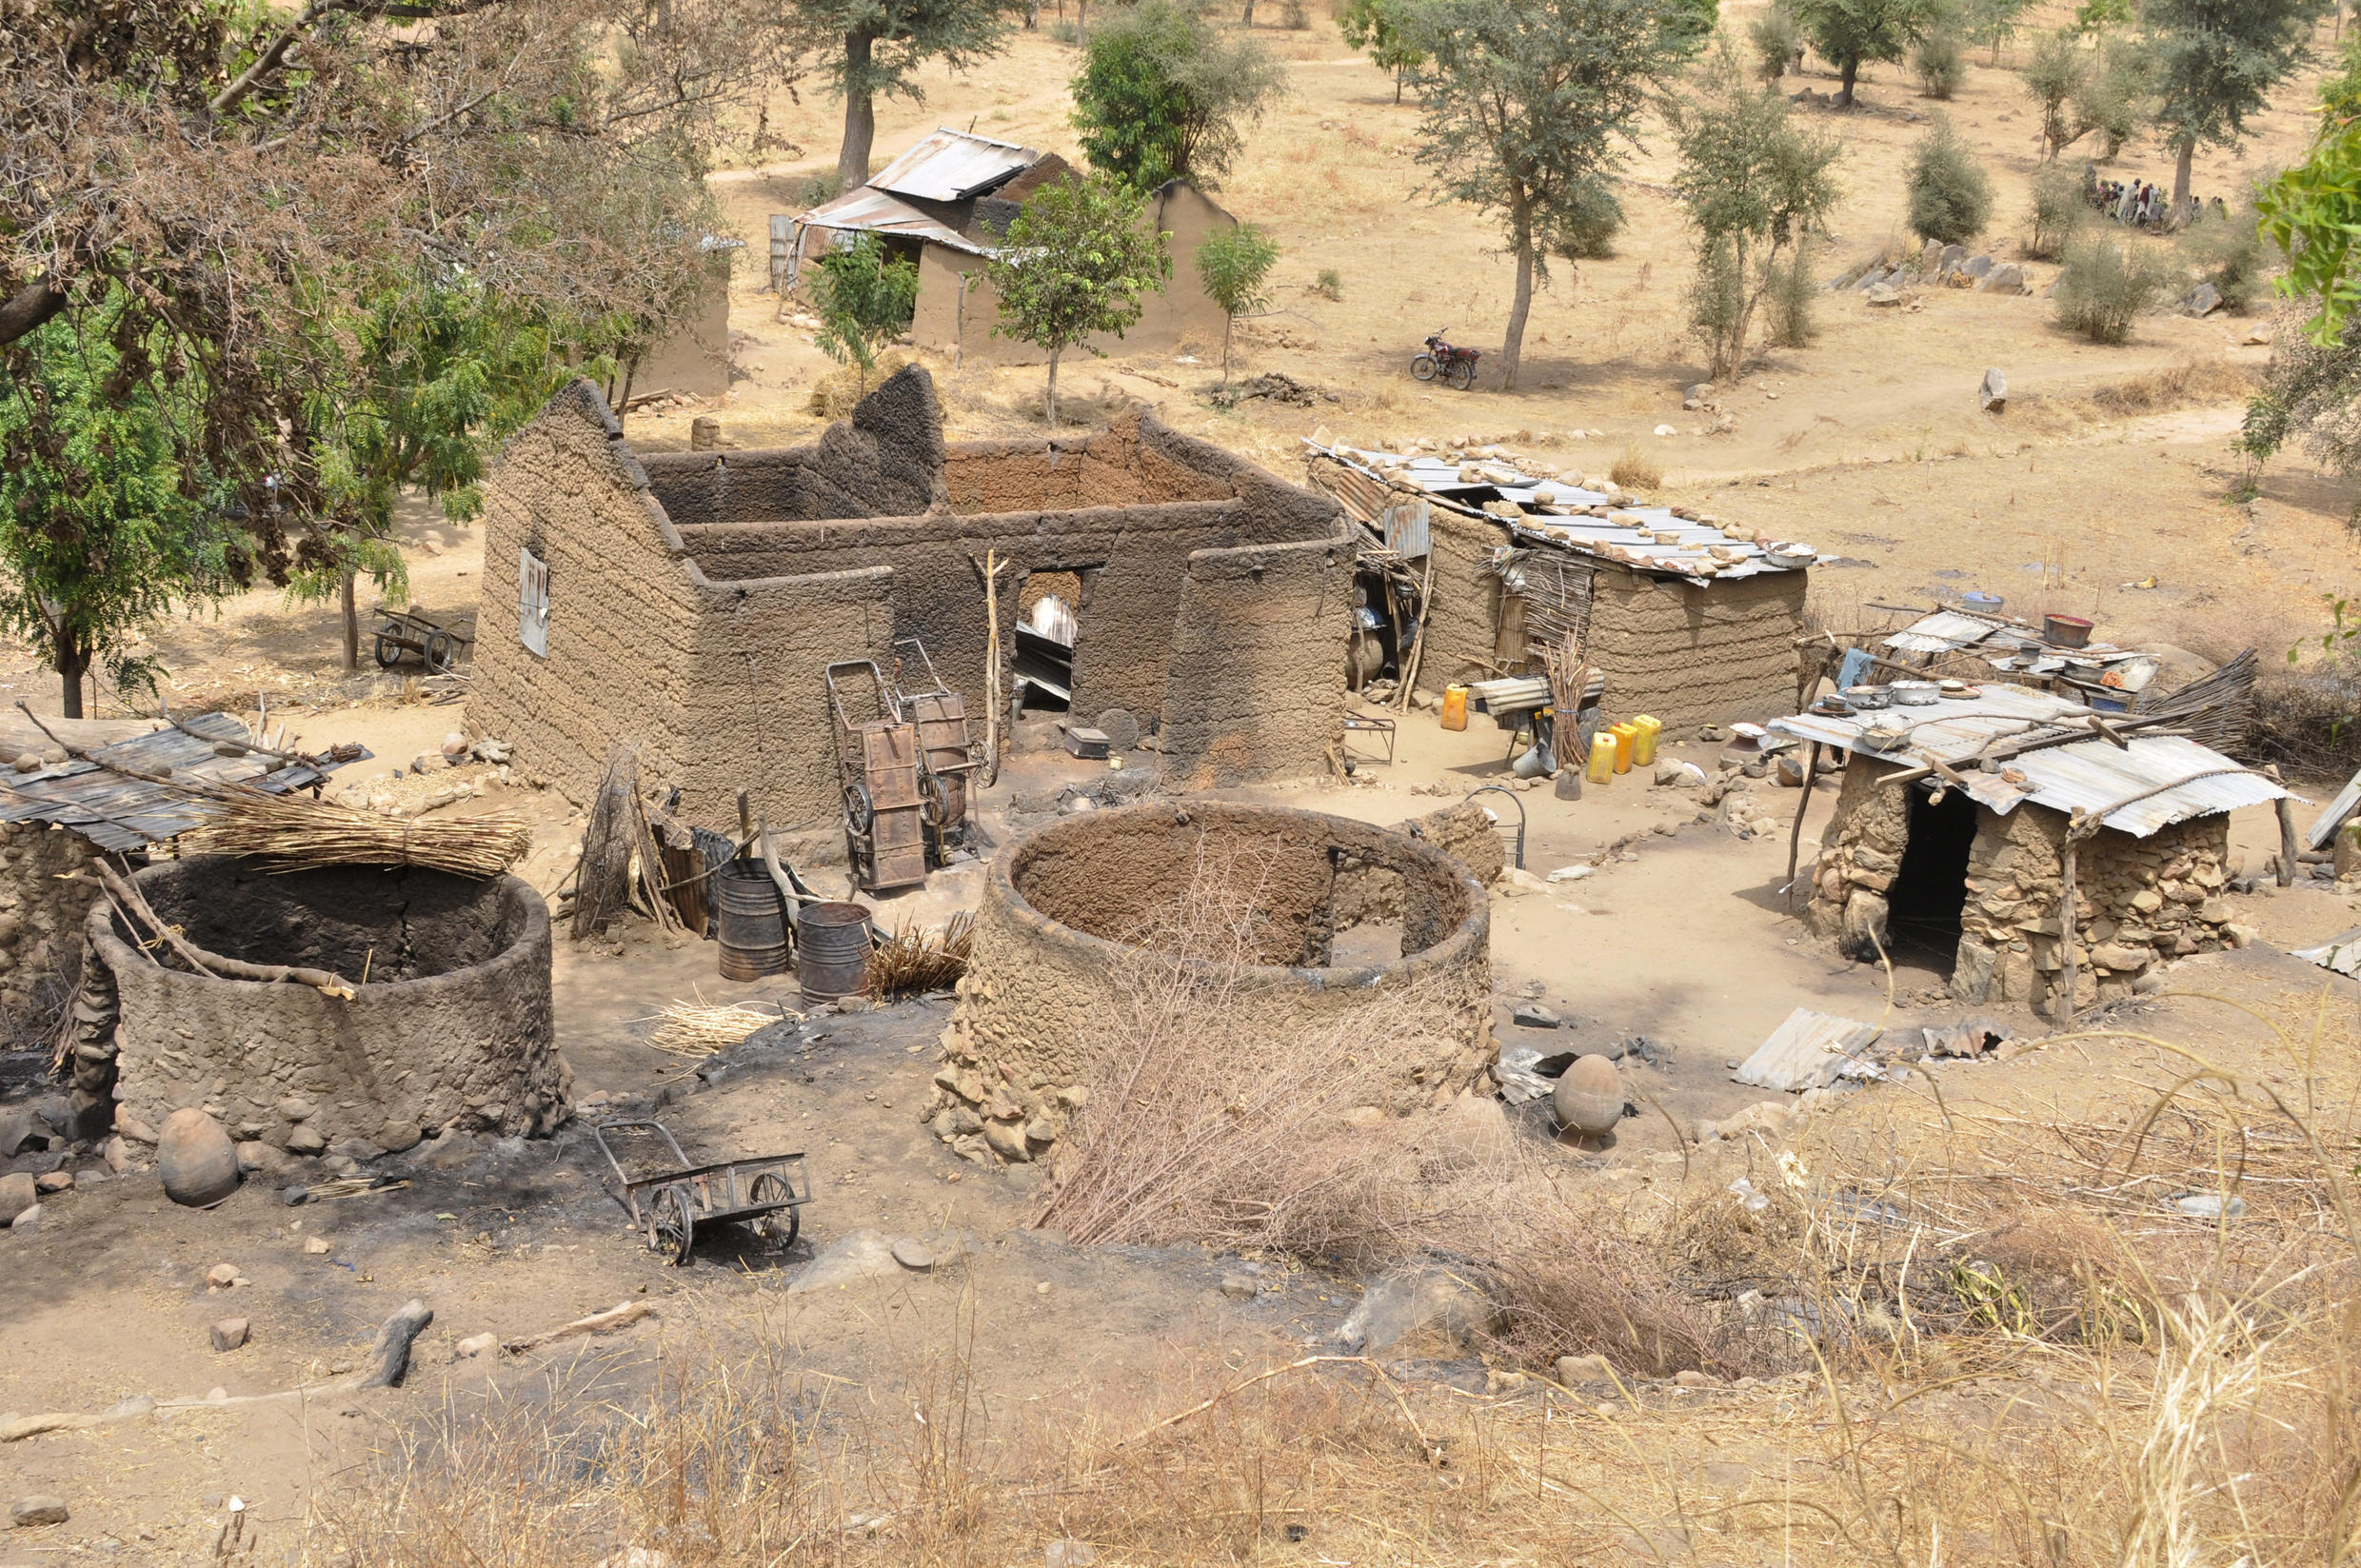 The killings took place in Seleved, northern Cameroon, where soldiers are fighting Boko Haram jihadists who also target civilians